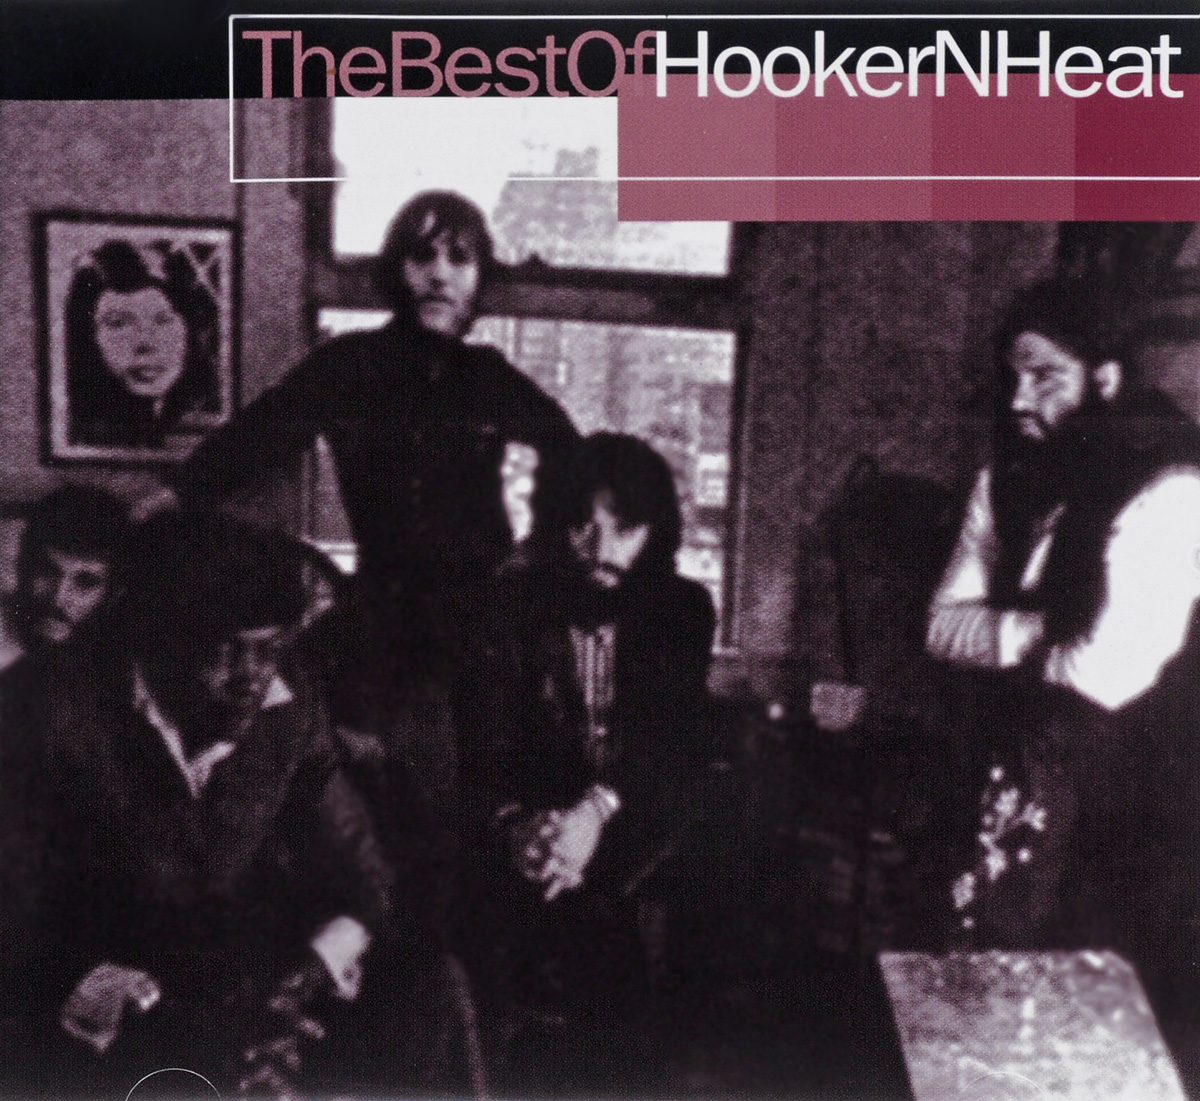 Canned Heat,Джон Ли Хукер Canned Heat & John Lee Hooker. The Best Of Hooker 'N Heat